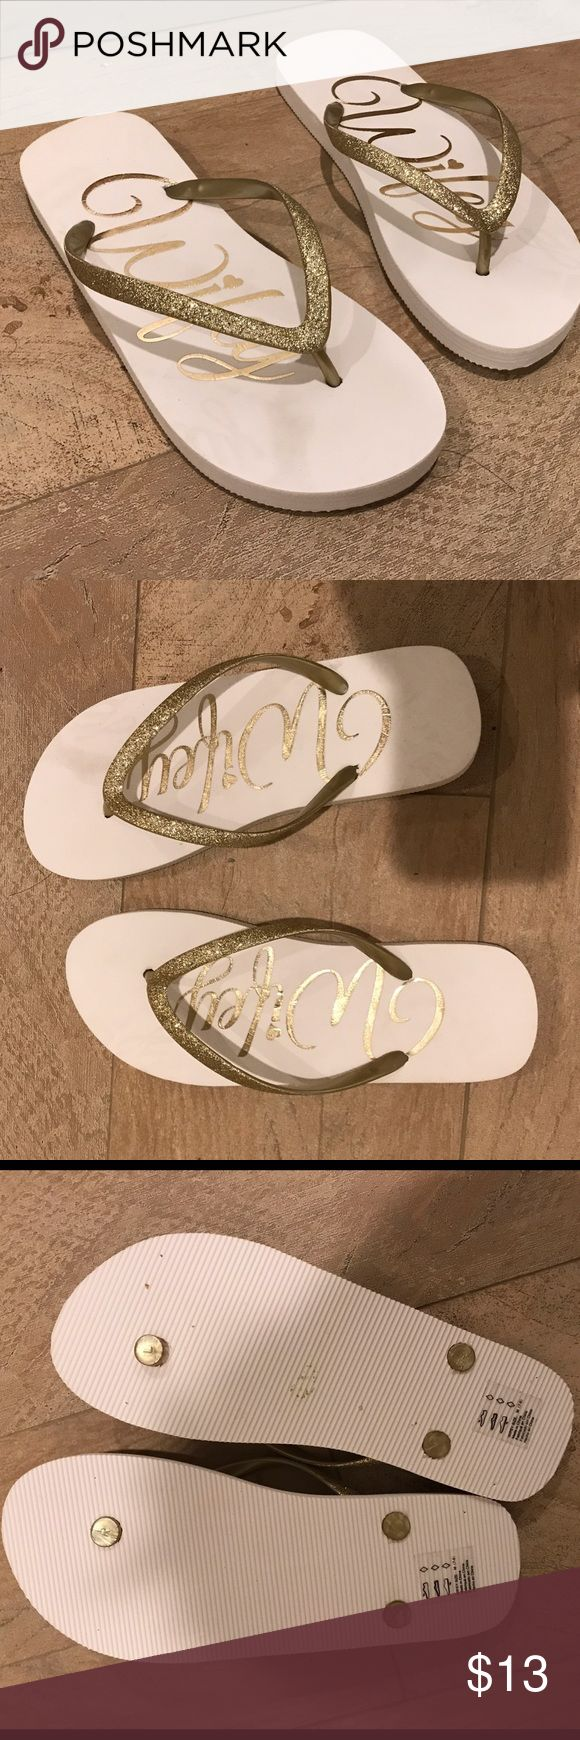 Brides Wifey flip flops in gold sparkle Wifey flip flops writing -and strap in gold glitter. Size is M 7-8. New without tags from Davids bridal. David's Bridal Shoes Sandals